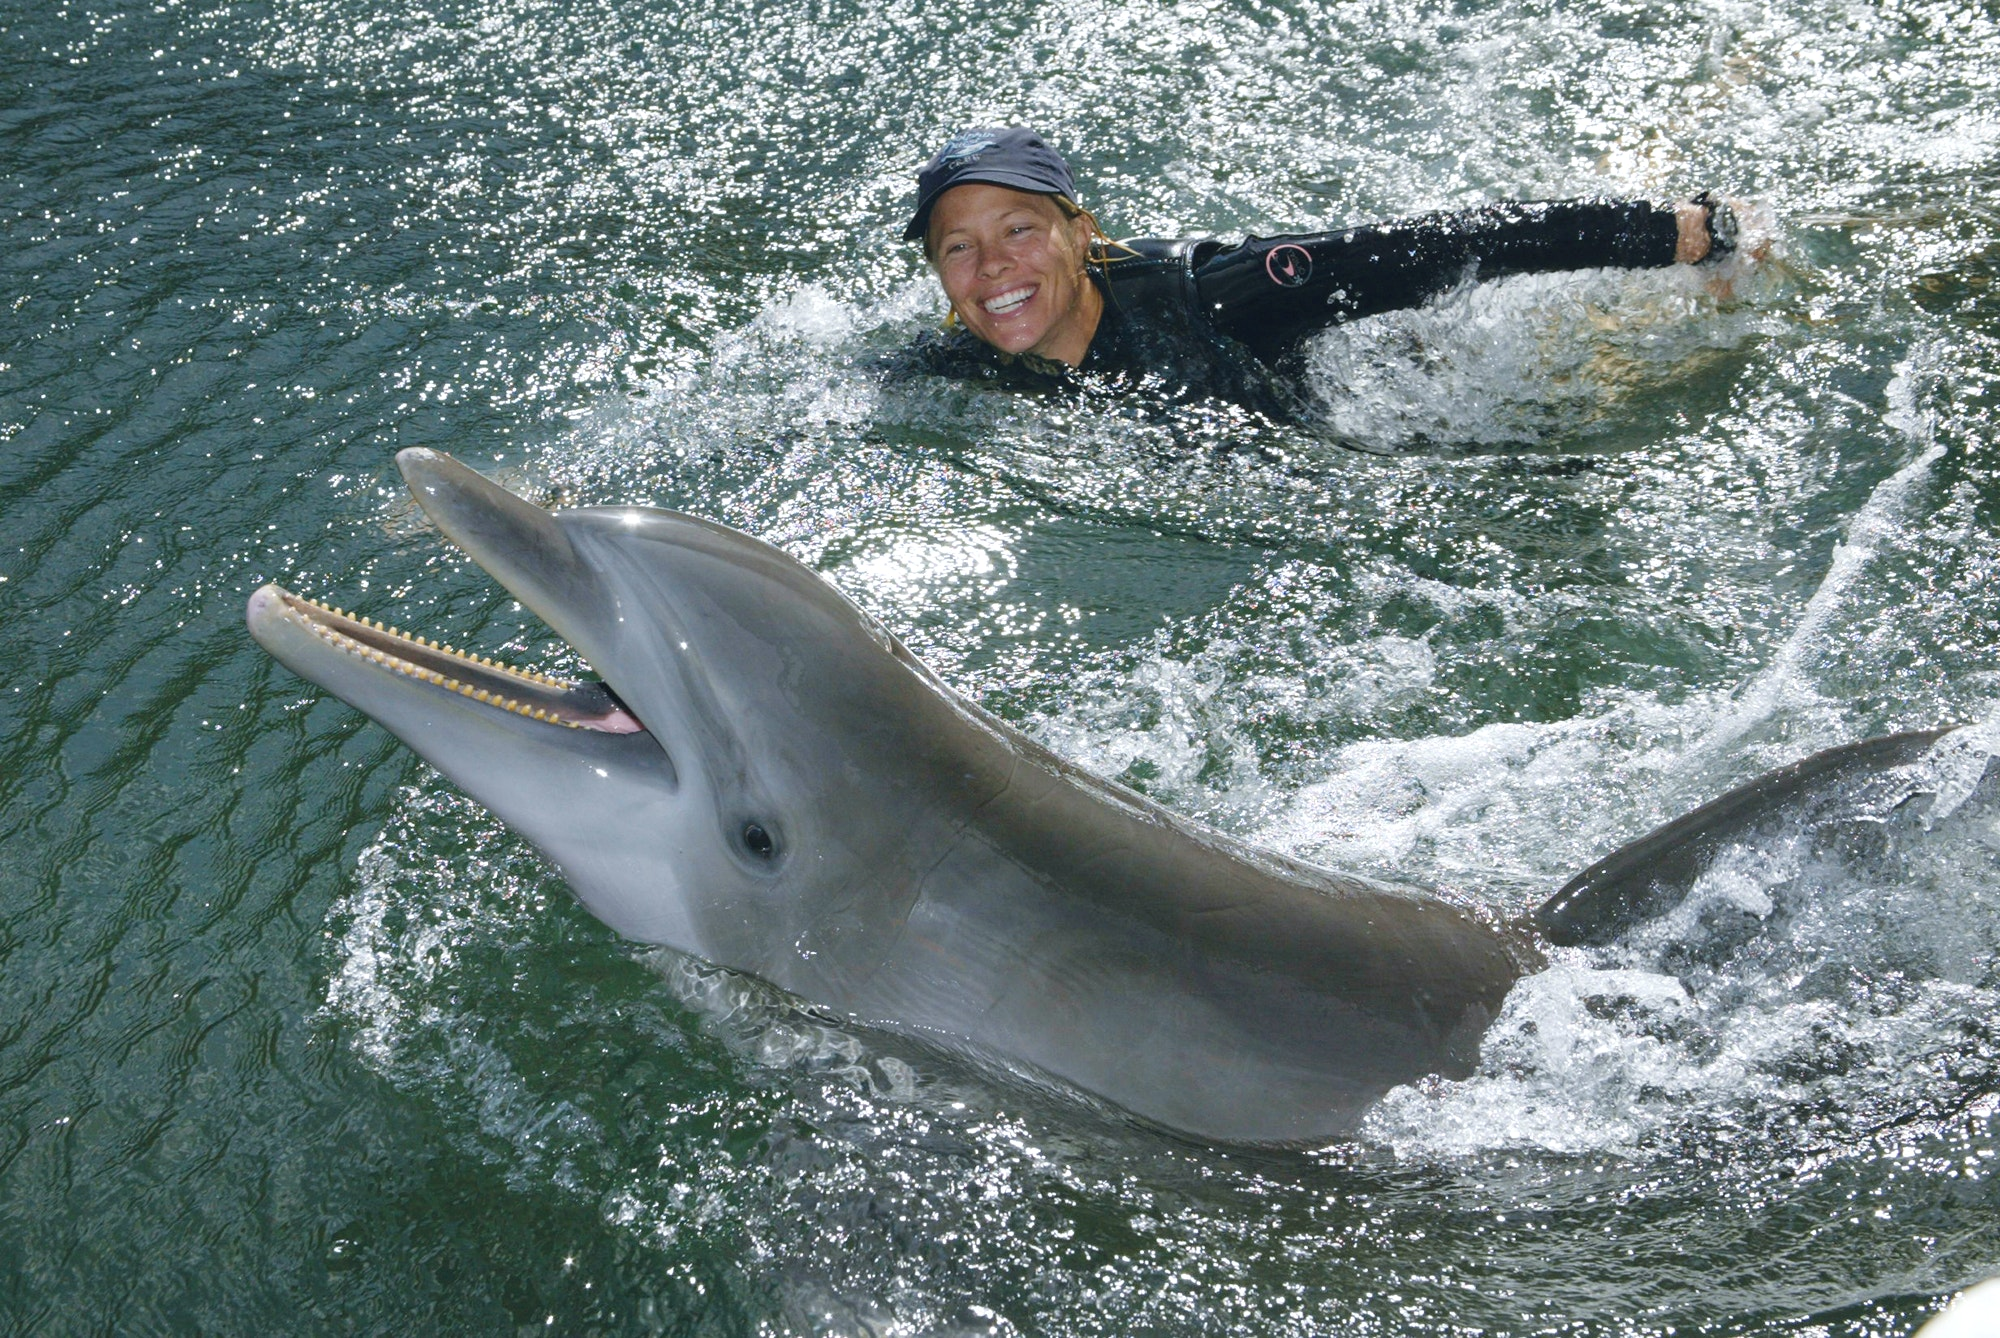 Animal trainer and dolphin